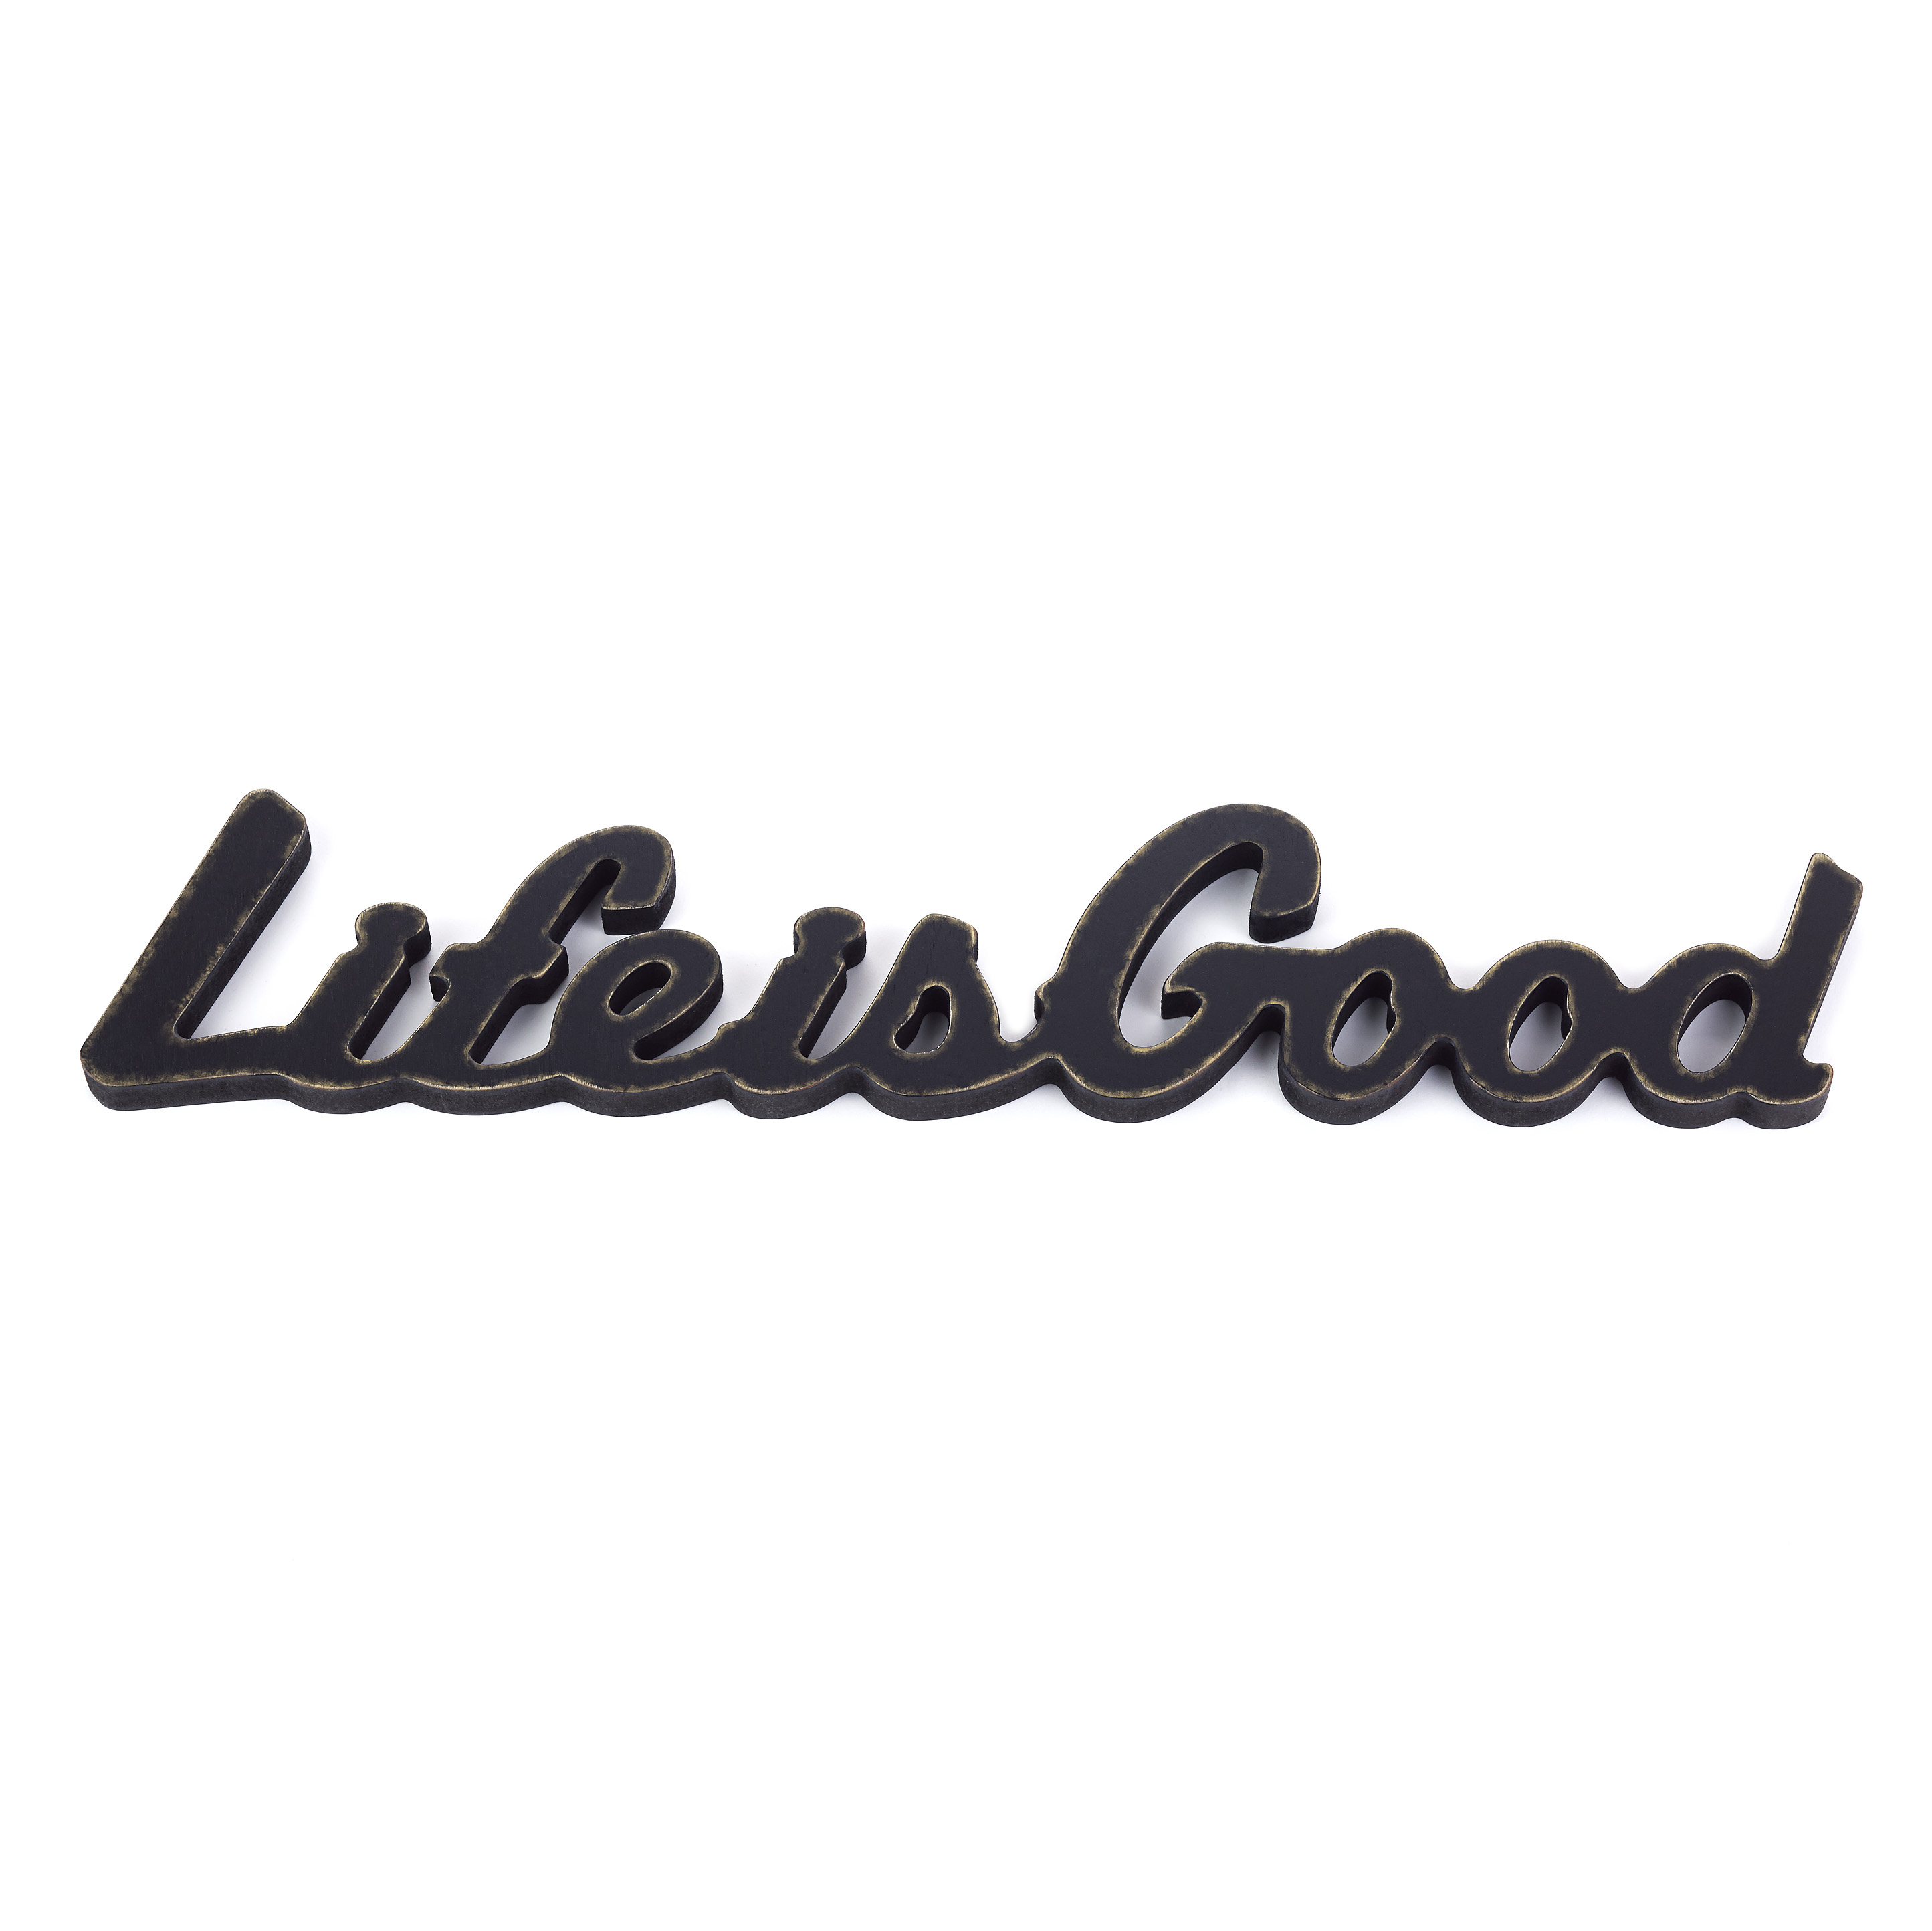 Sentiment Signs Life Is Good - $29.95